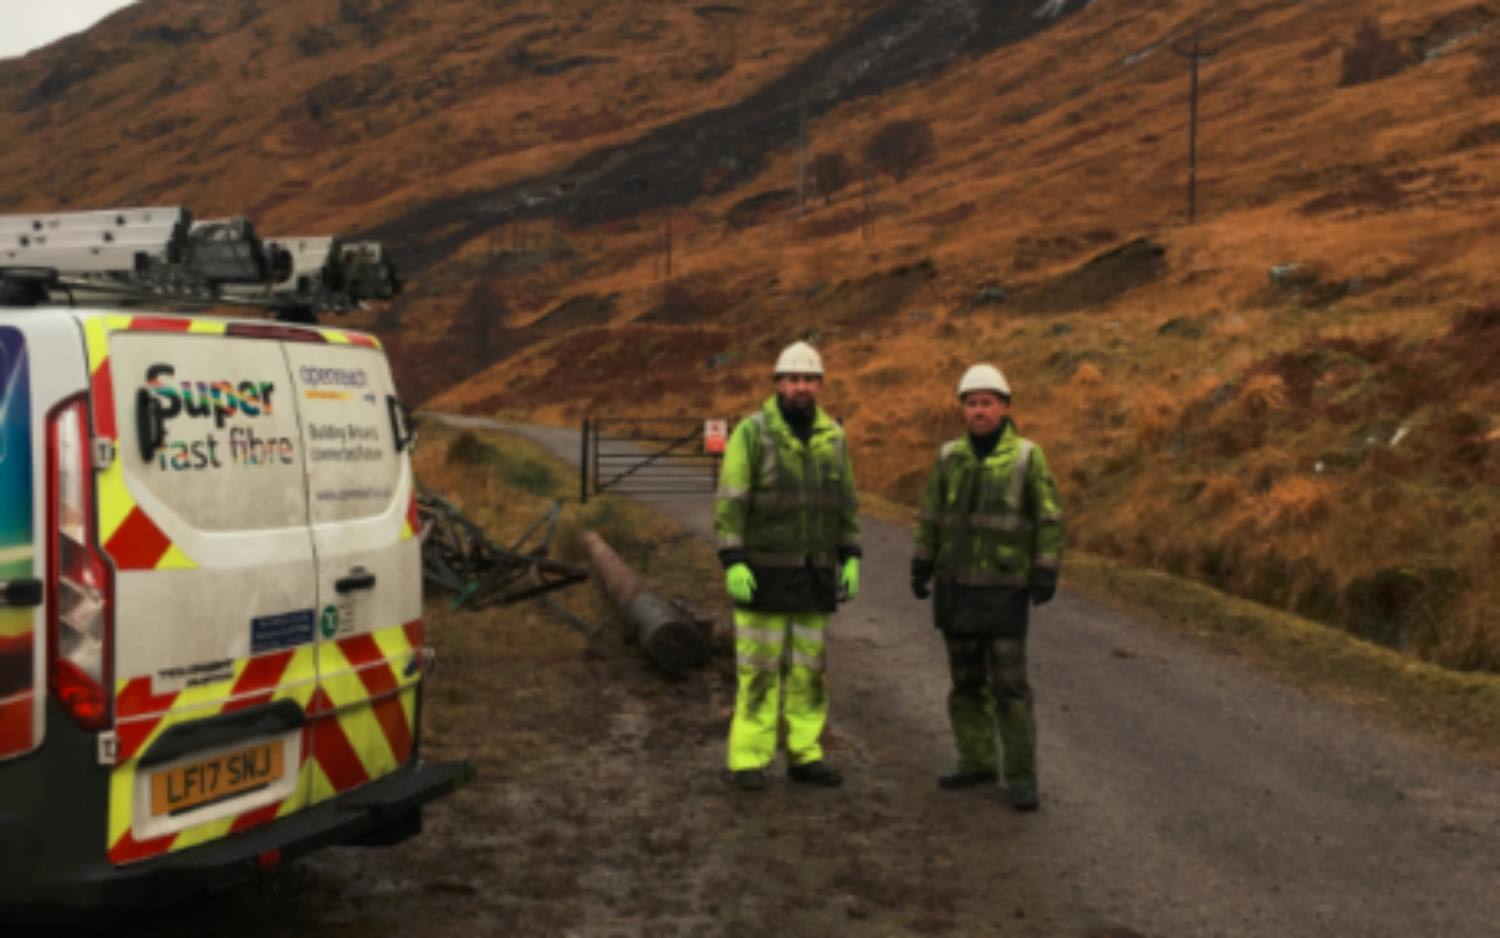 Drone used to restore communications in Scottish Higlands